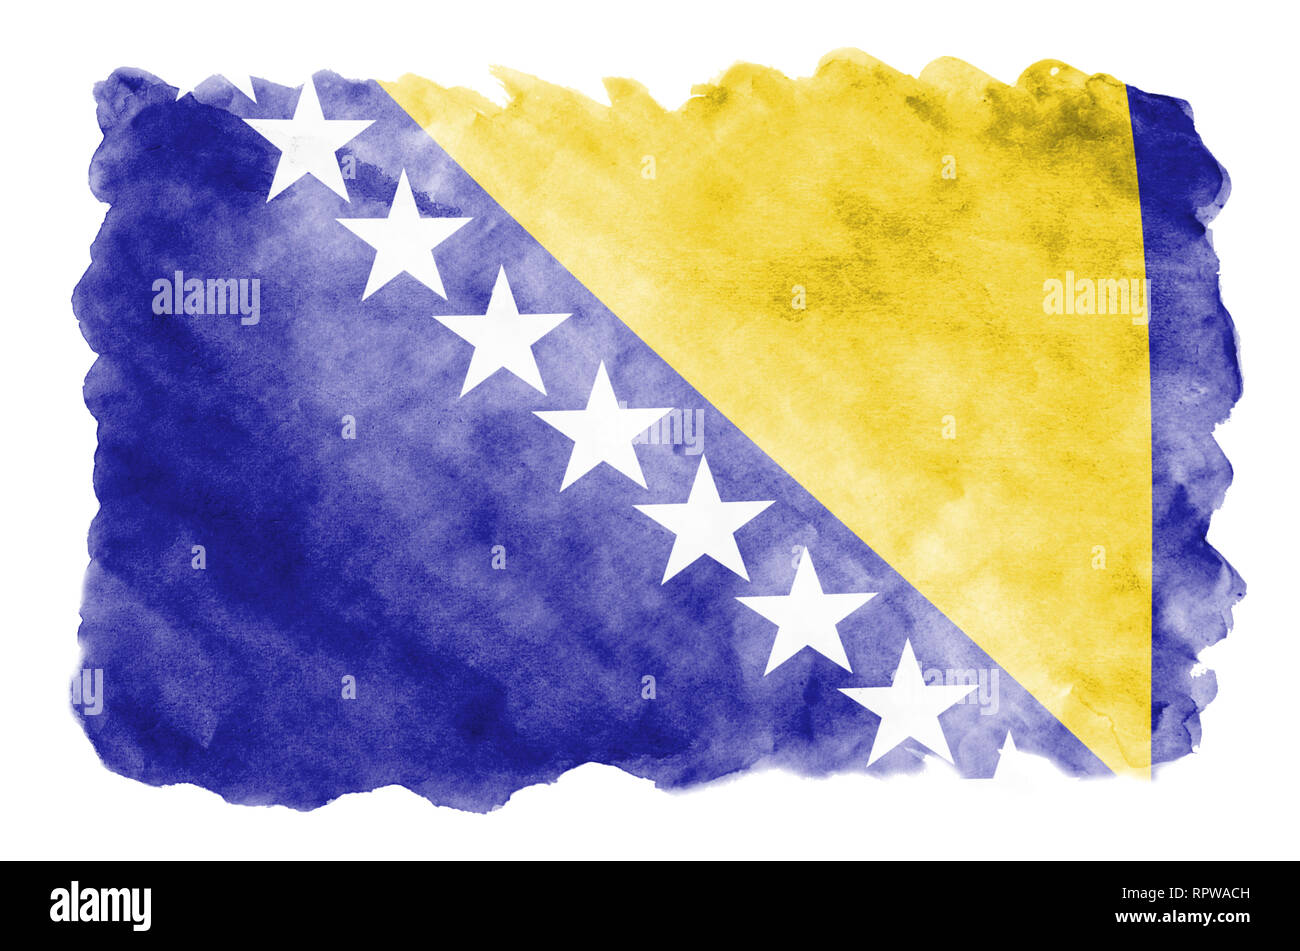 Bosnia and Herzegovina flag  is depicted in liquid watercolor style isolated on white background. Careless paint shading with image of national flag.  - Stock Image